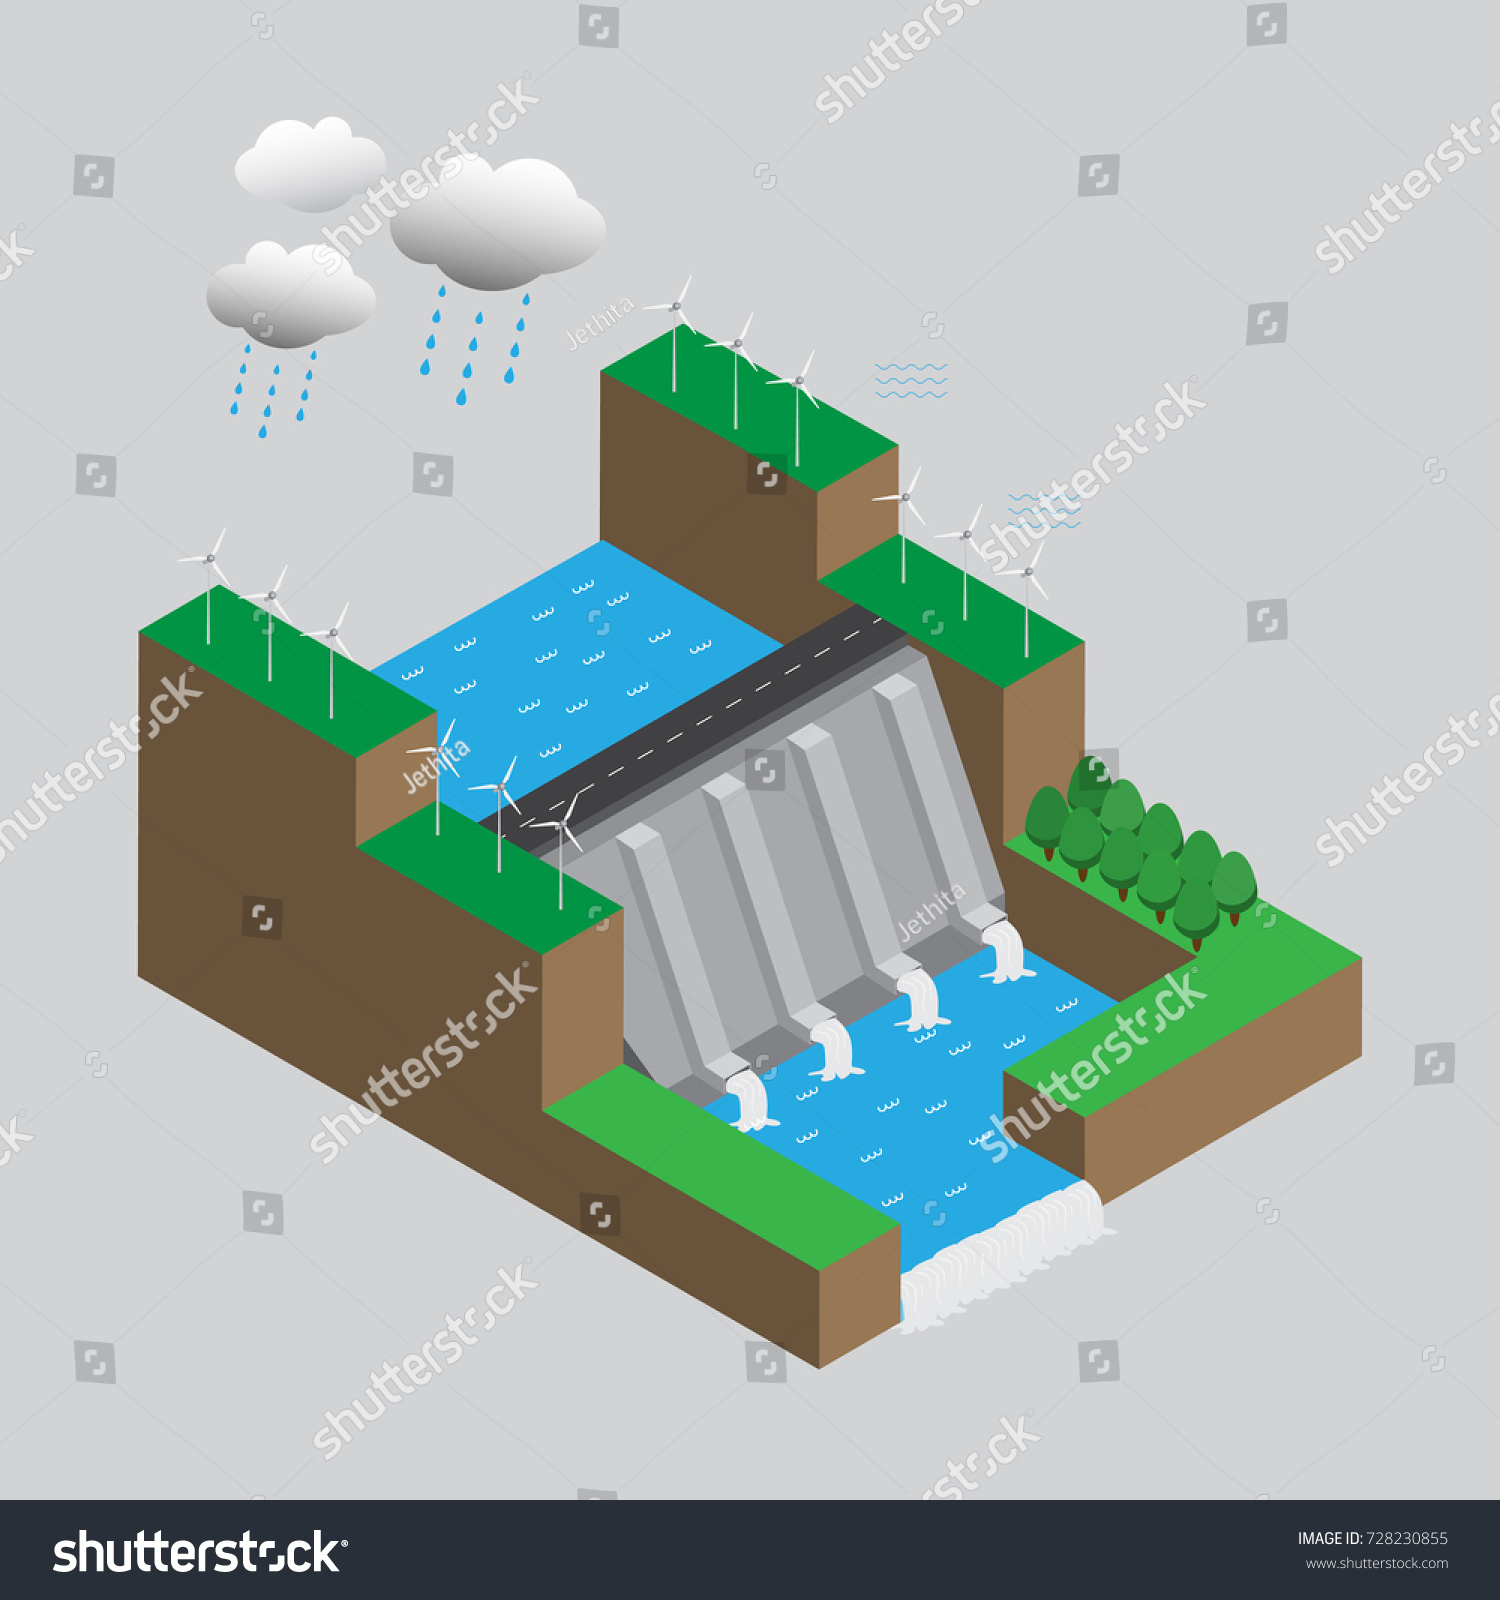 hight resolution of alternative energy sources hydroelectric power dam and windmills